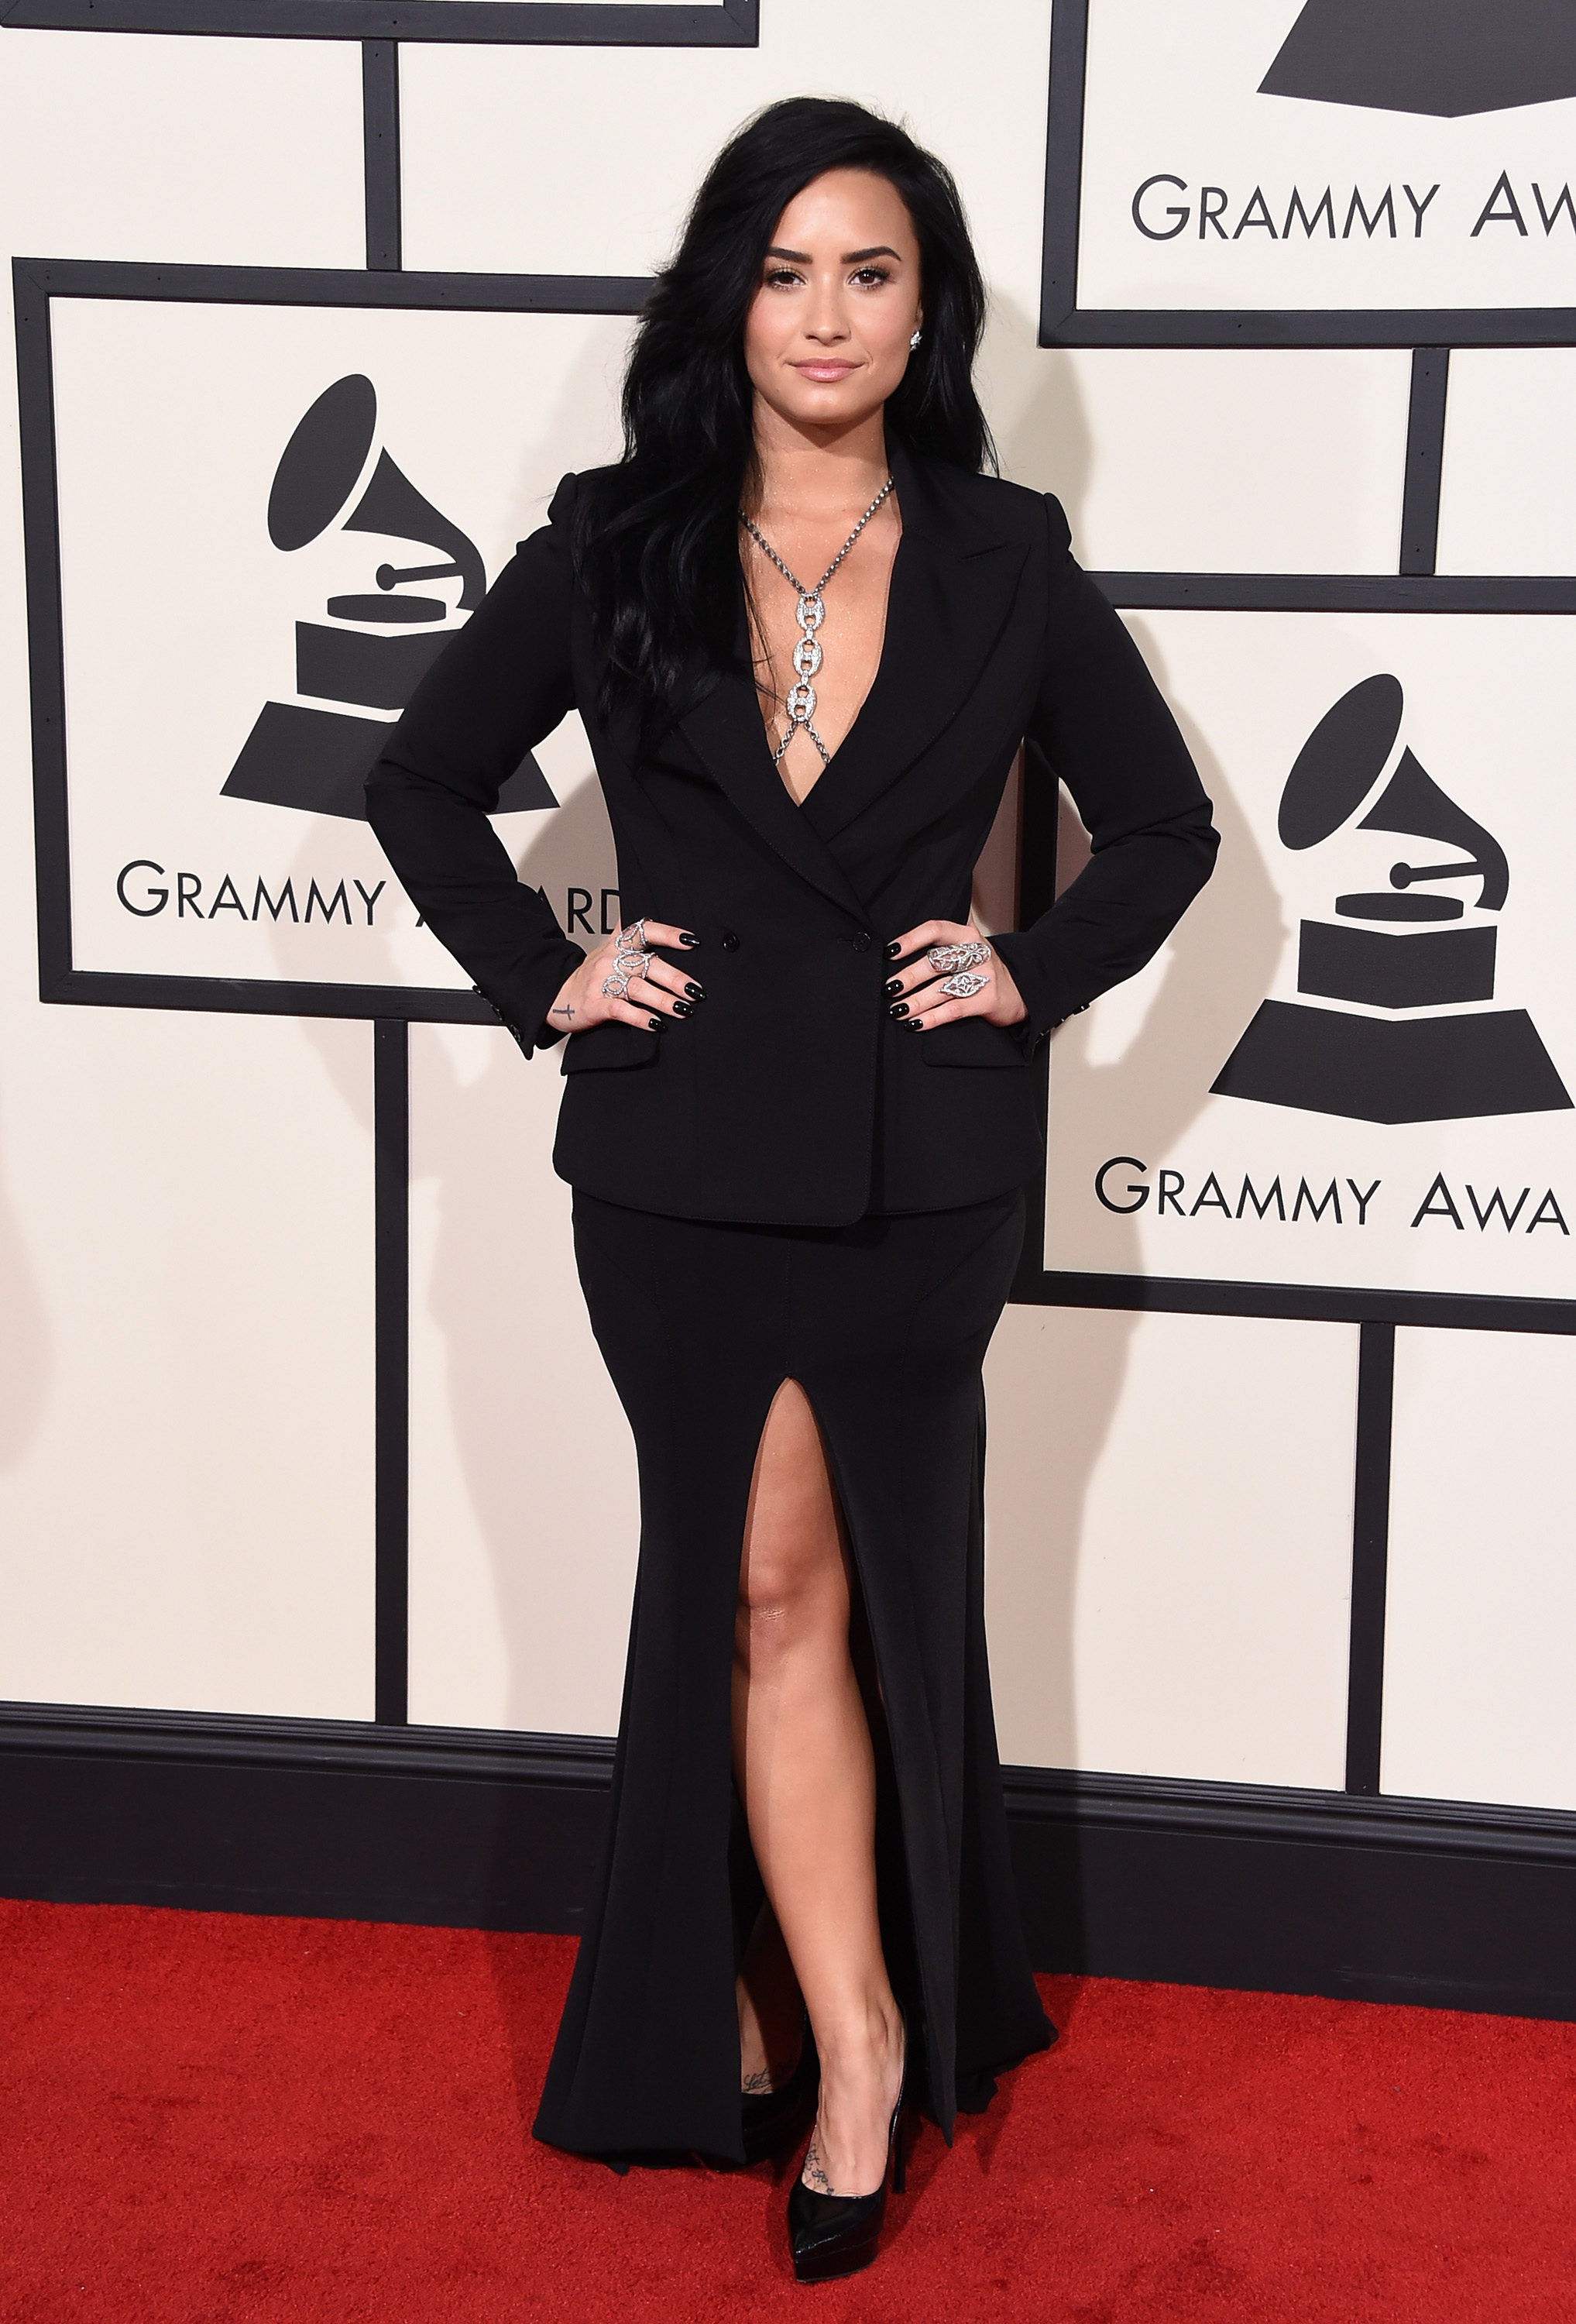 Demi Lovato attends the 58th GRAMMY Awards at Staples Center on Feb. 15, 2016 in Los Angeles.